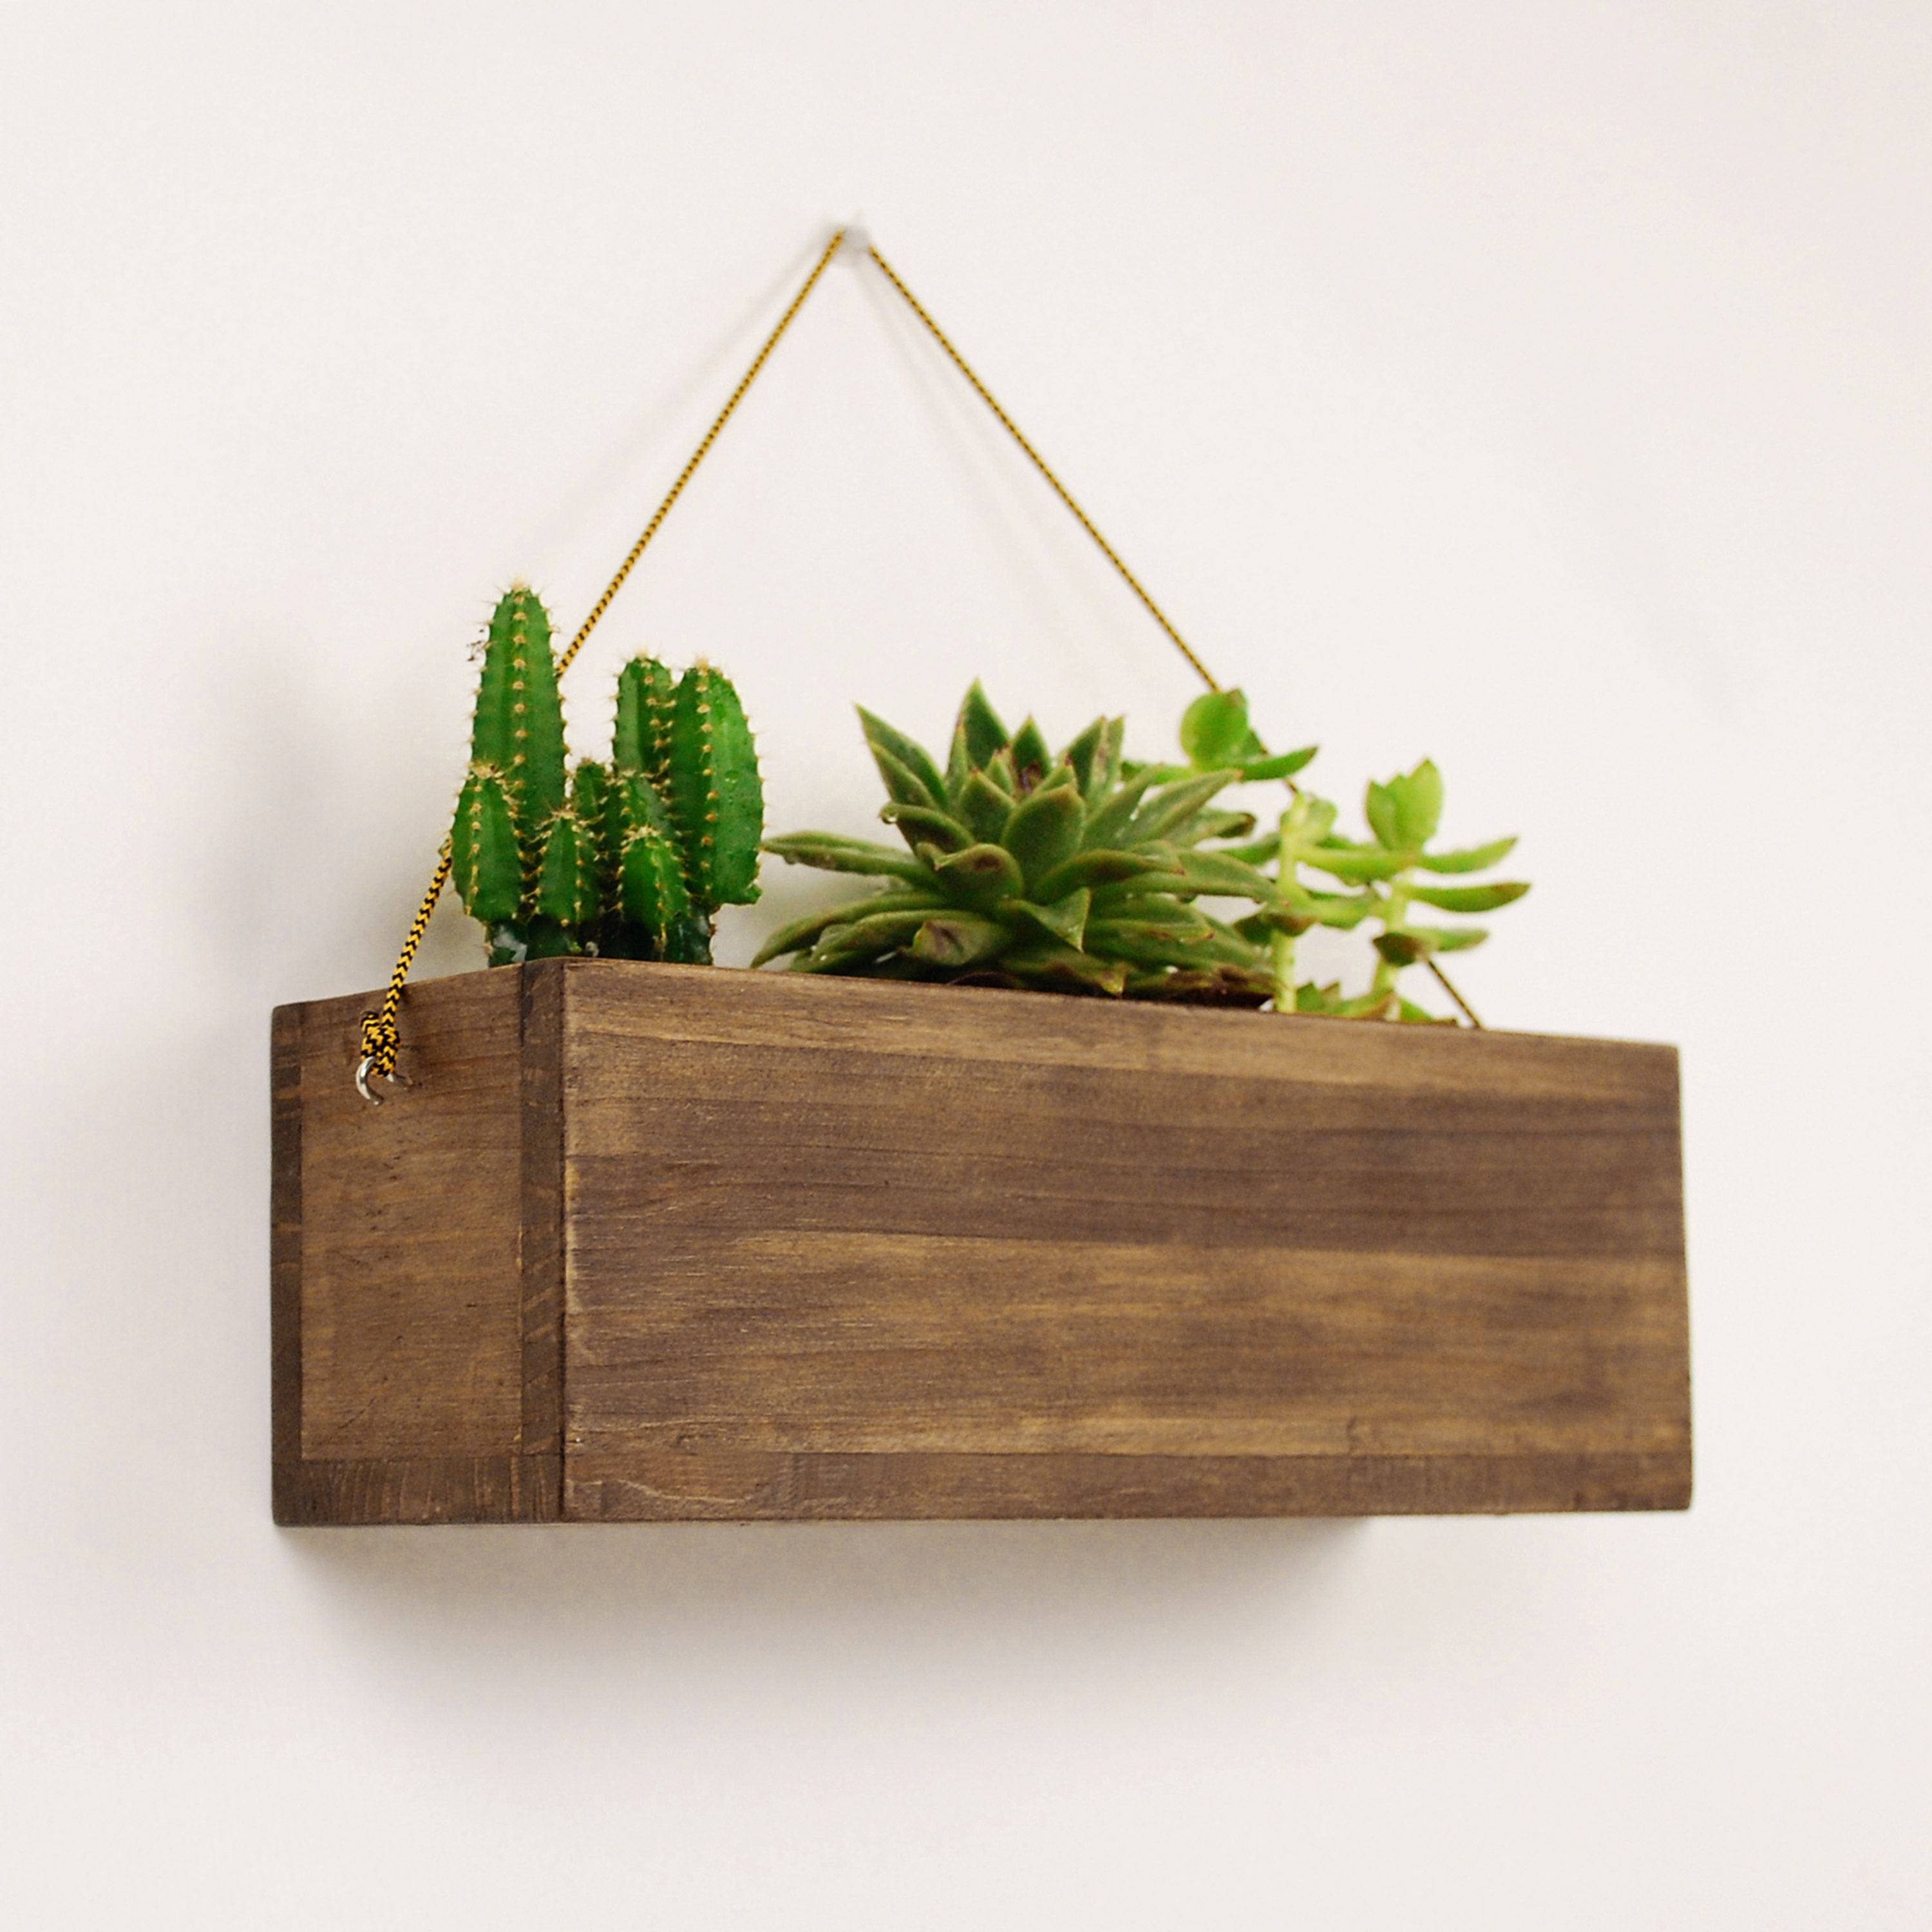 Vintage Wooden Hanging Planter For Succulents And Cactus Simple Wood Indoor Wall Hanging Planter Rustic Wood Indoor Plant Pot Wall Hanging Plant Pots Hanging